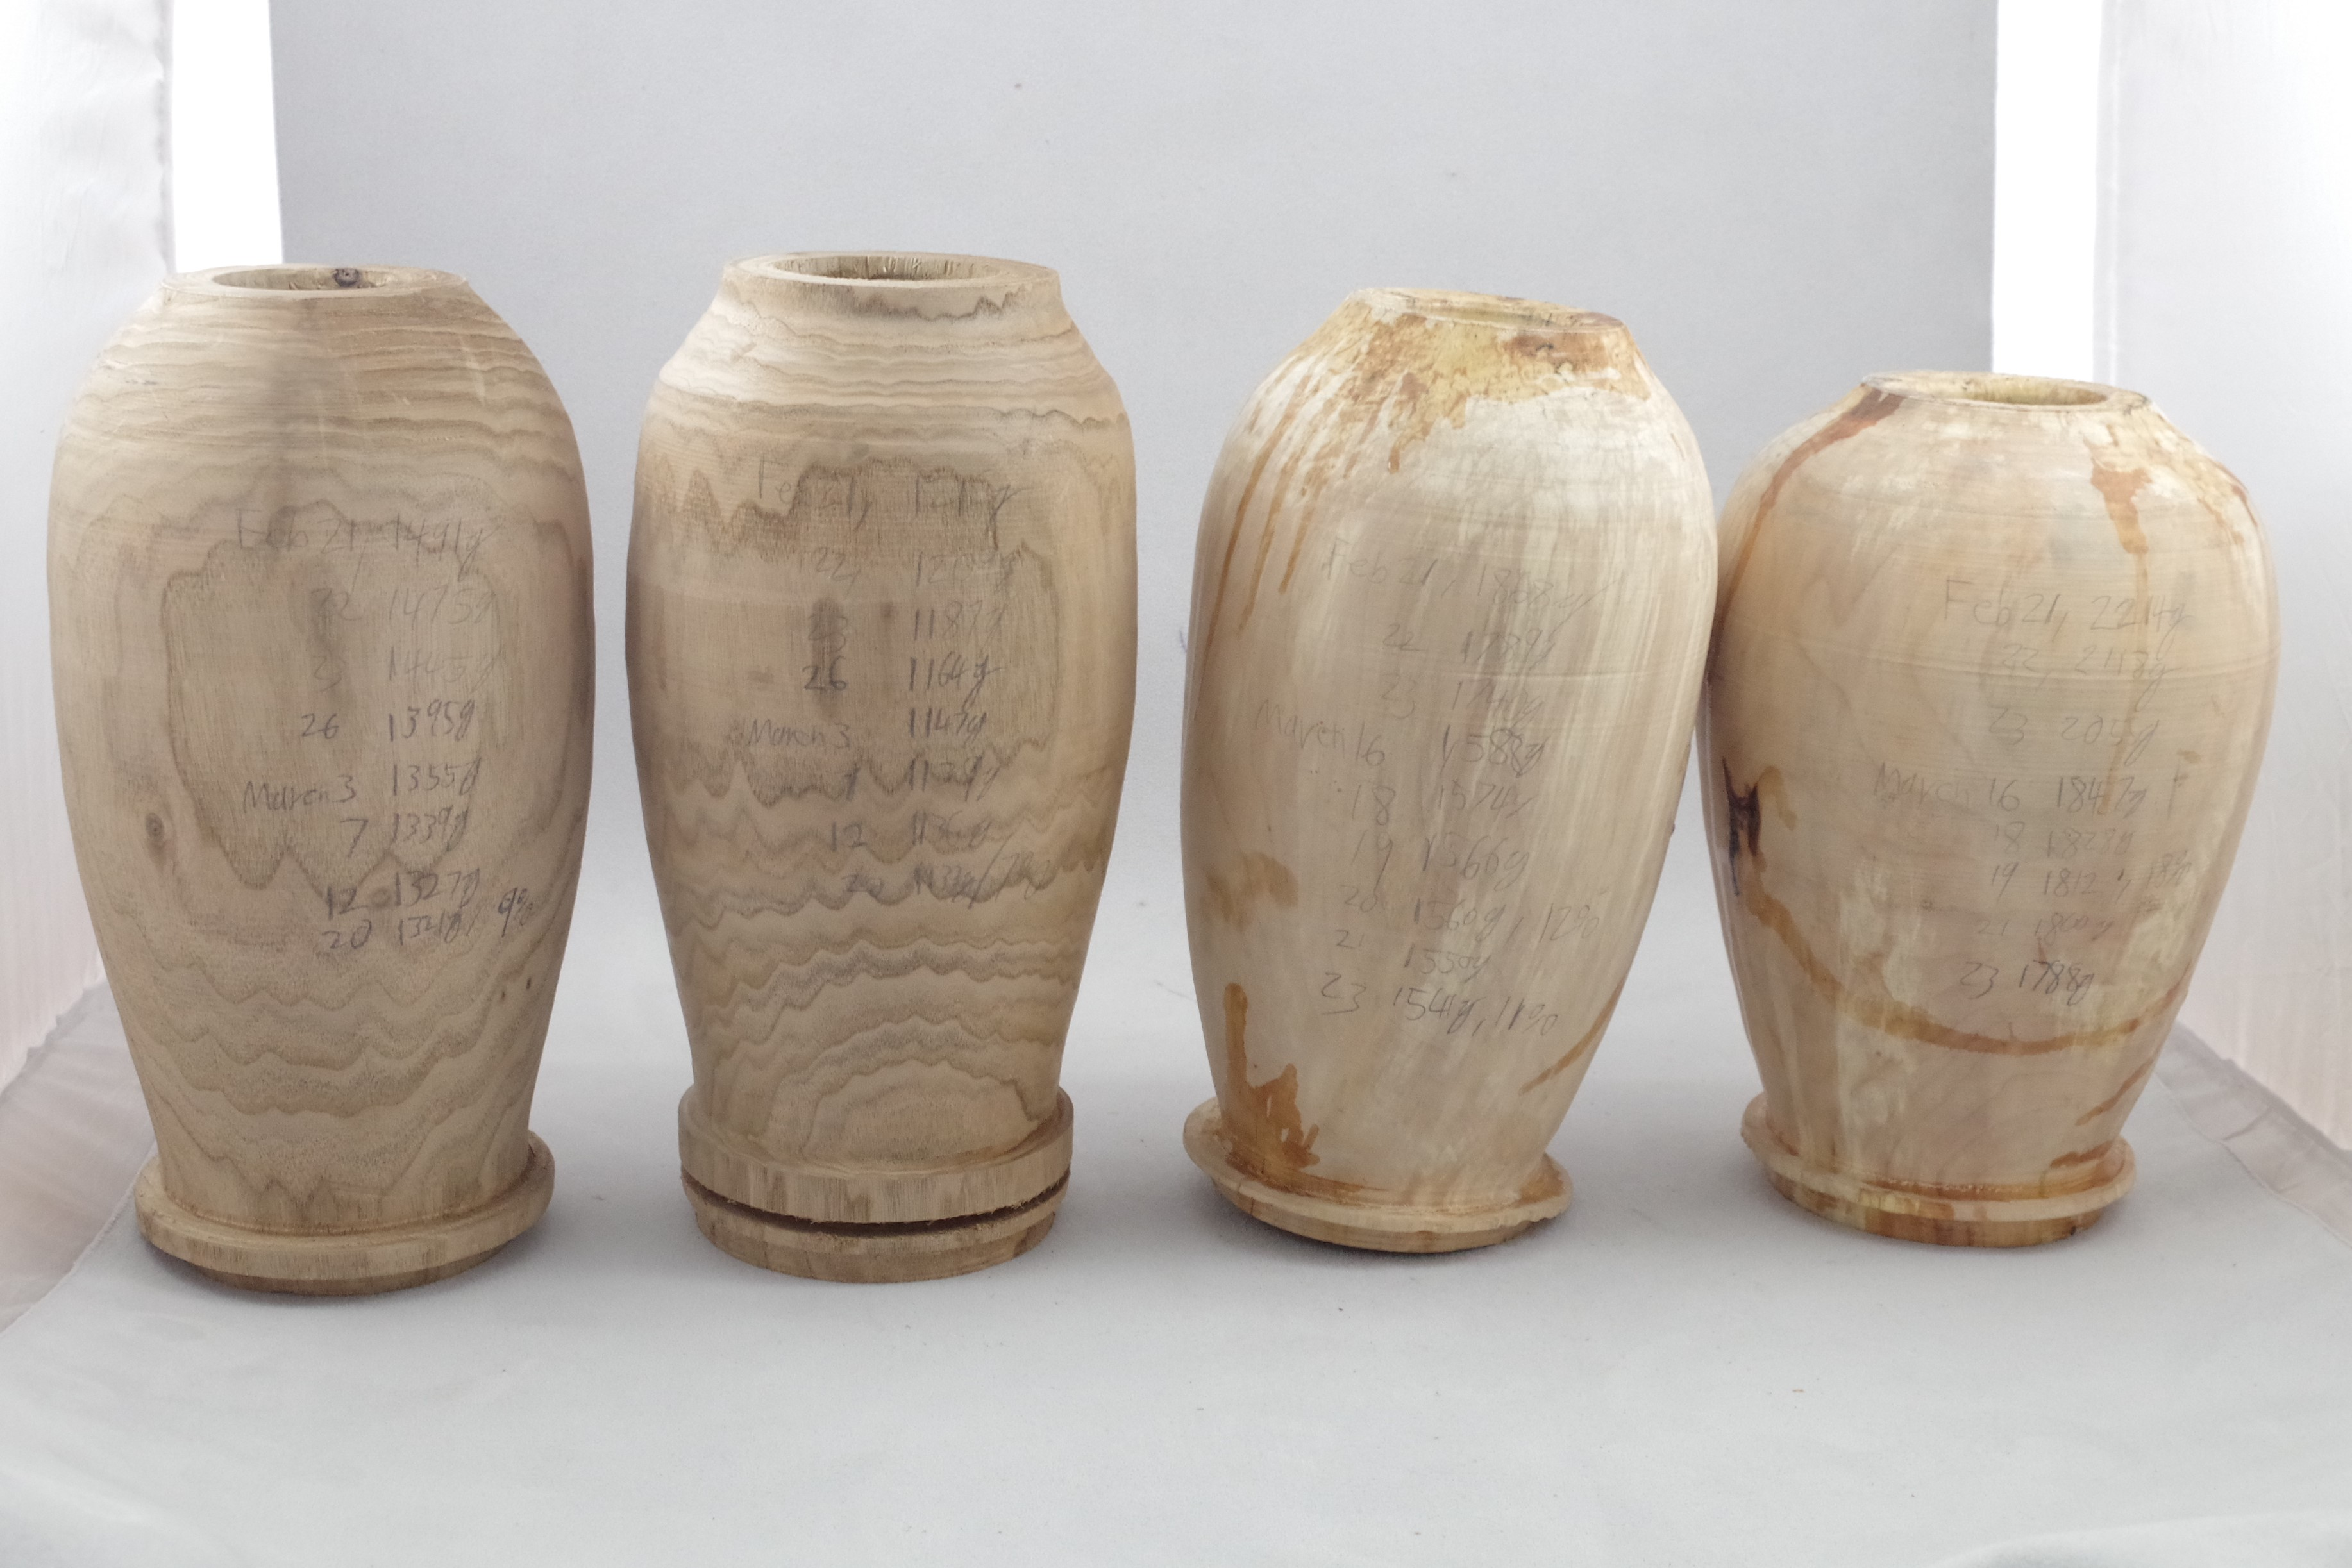 Roughed out urns